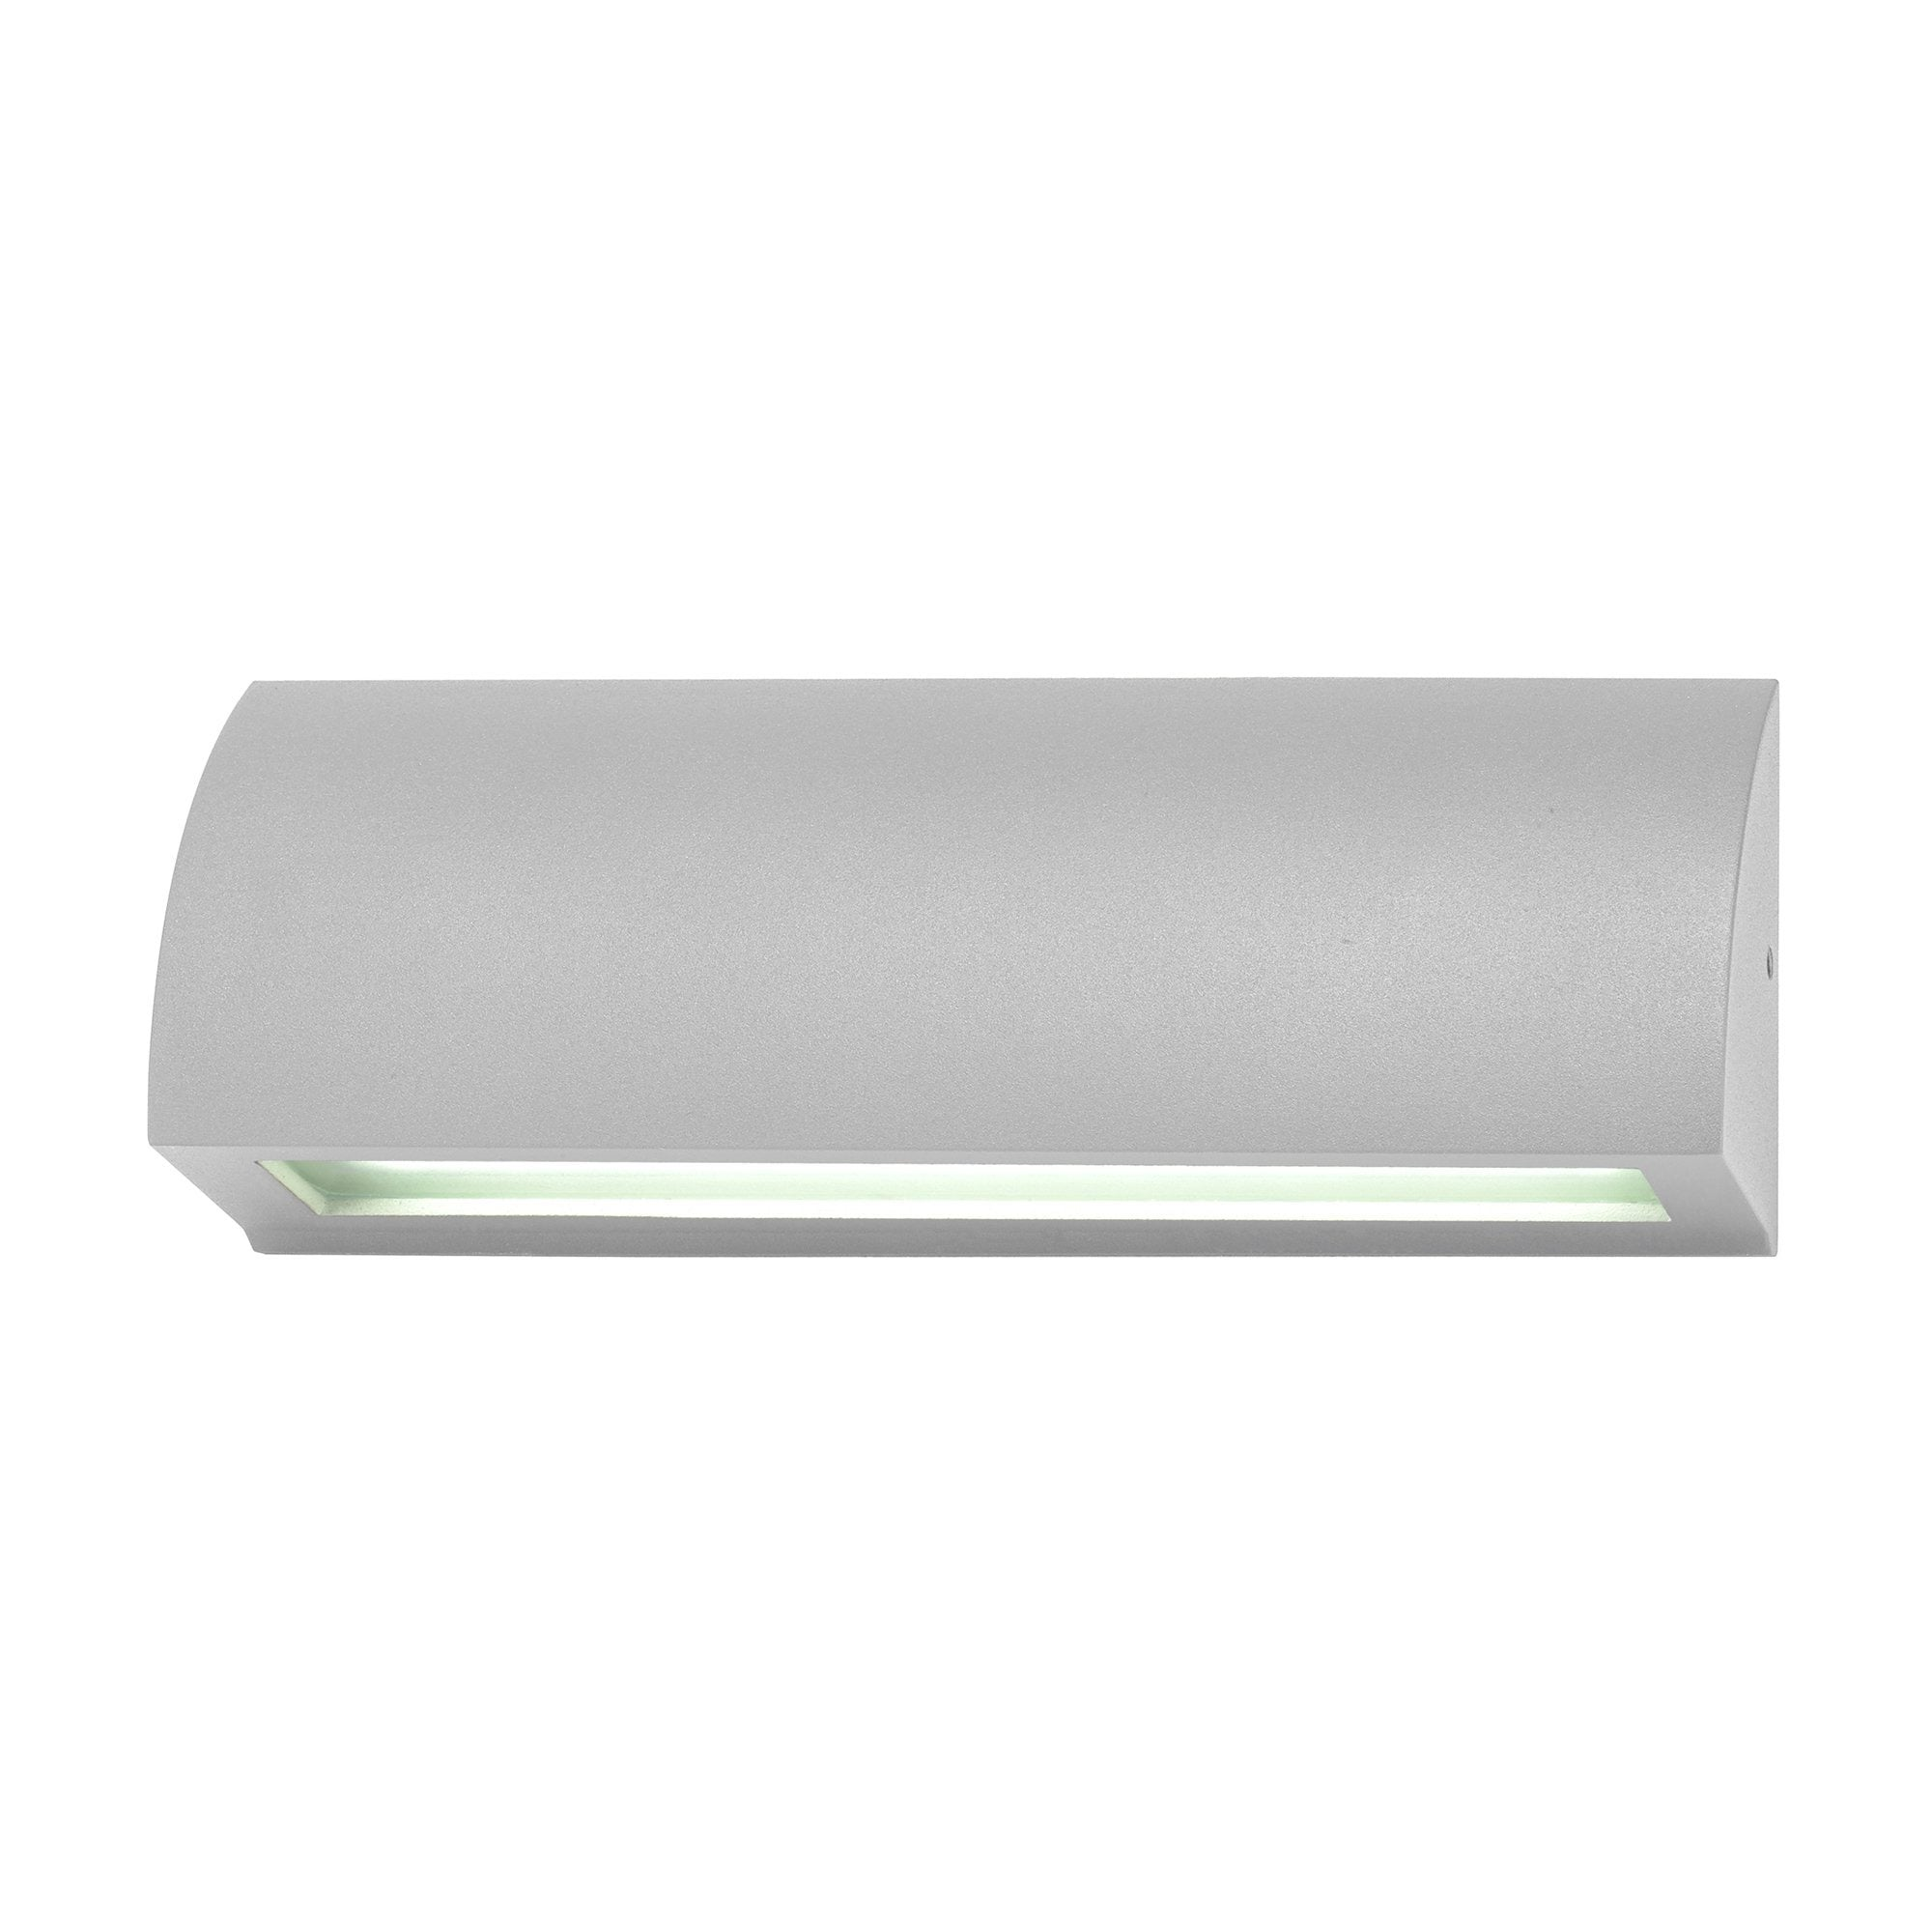 HV3272-SLV-12V - TASO 10w Silver LED Step Light